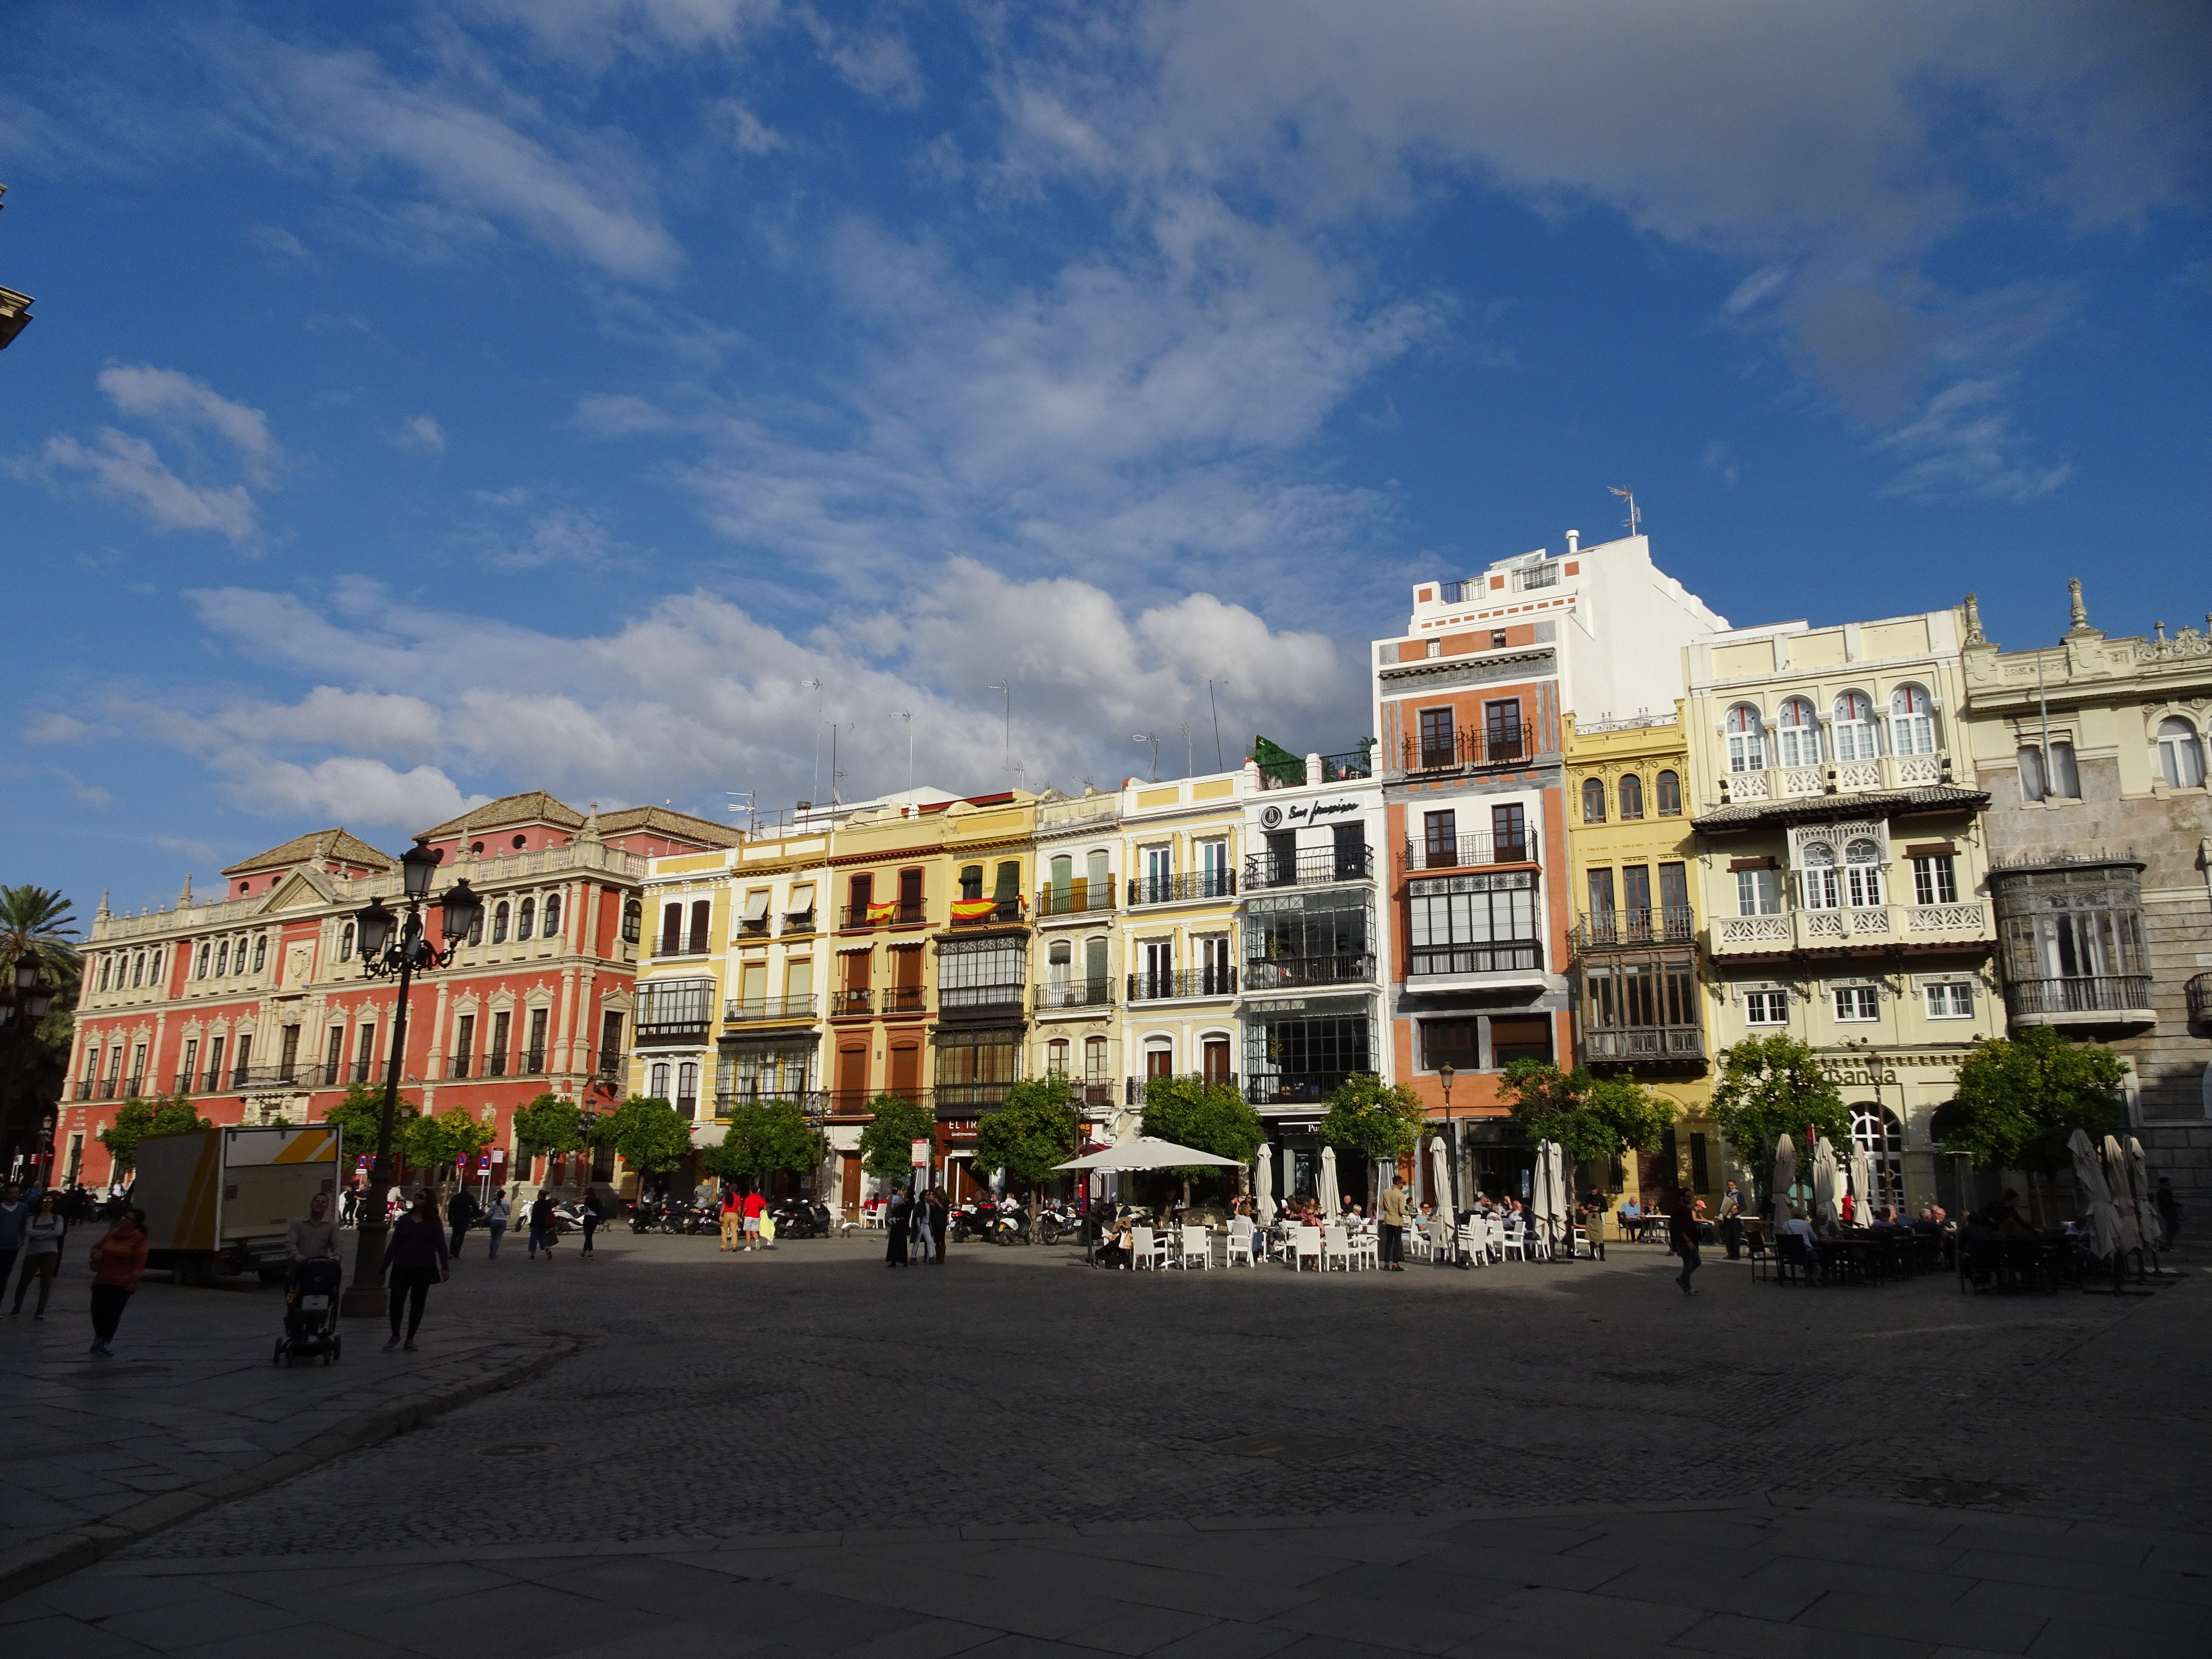 Explore the shopping streets of Seville